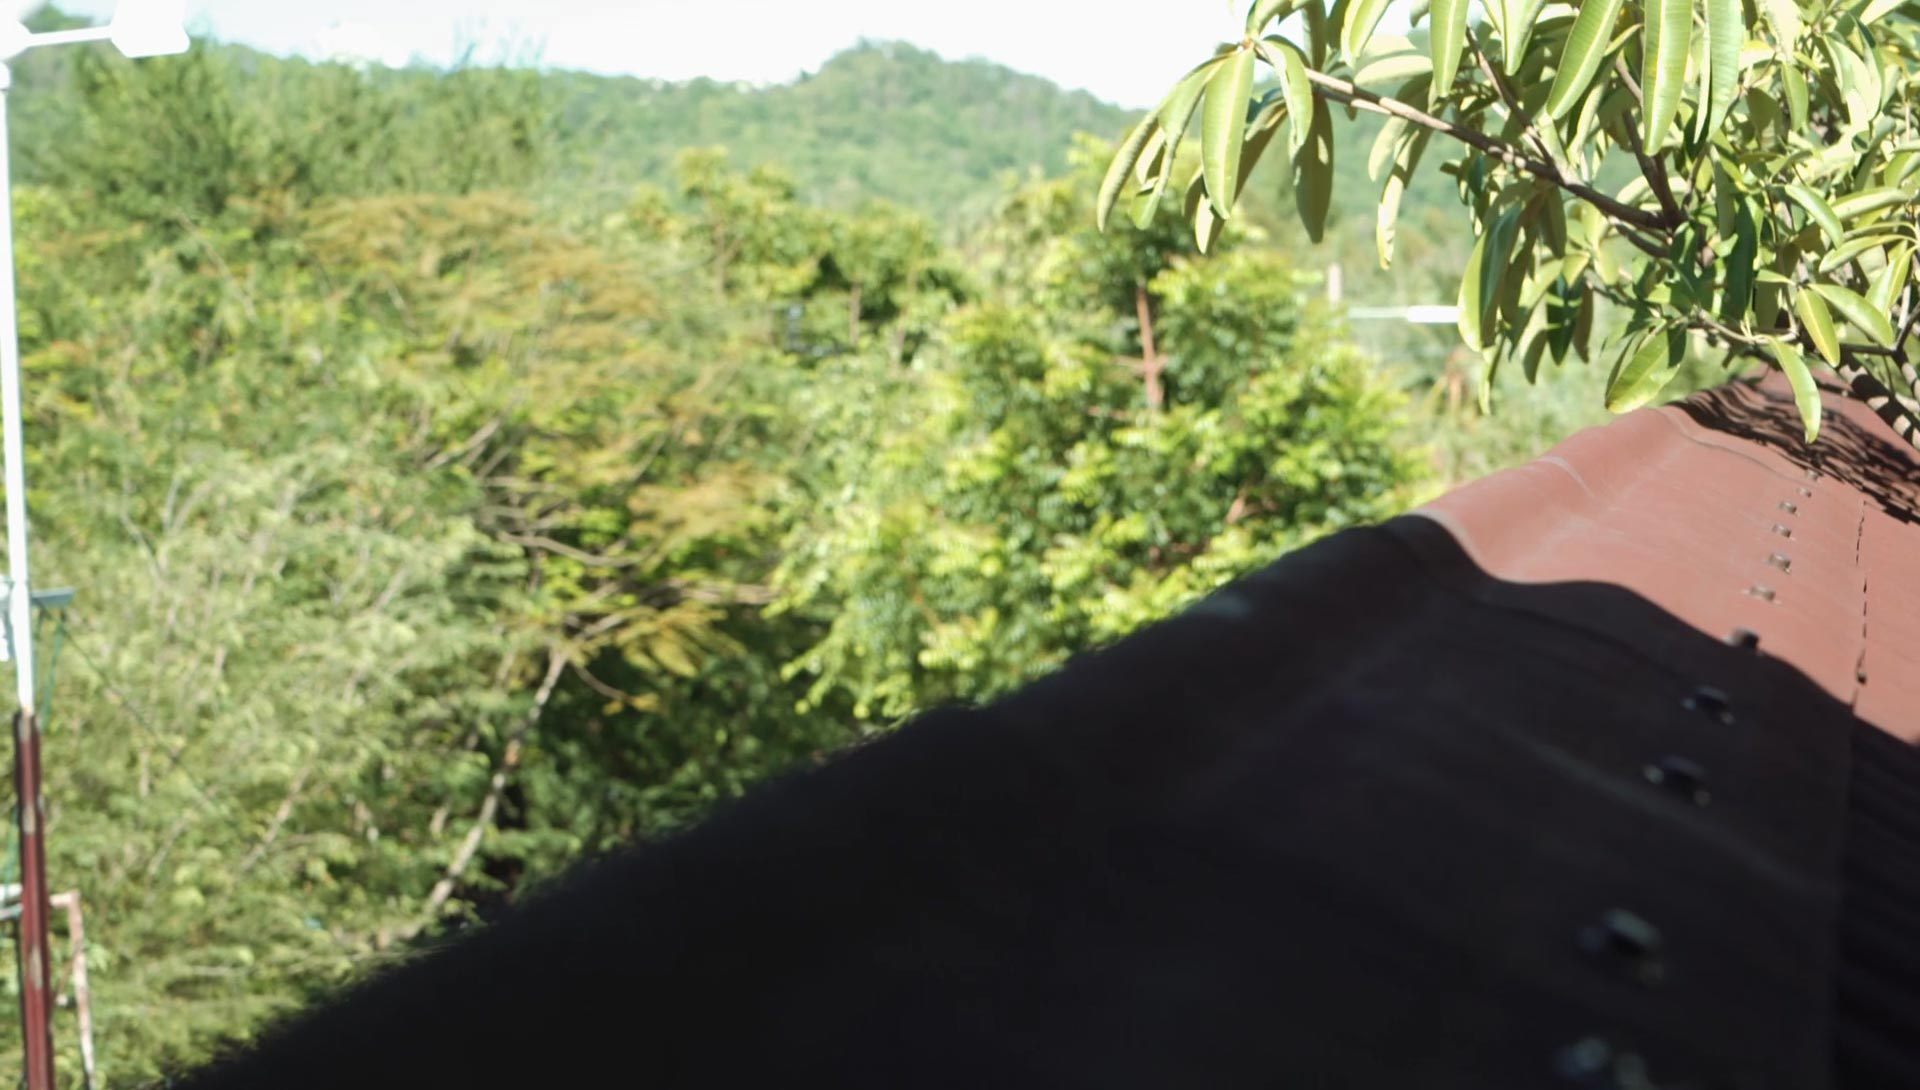 Views of the mountains in the distance to be had during your permaculture course, Thailand